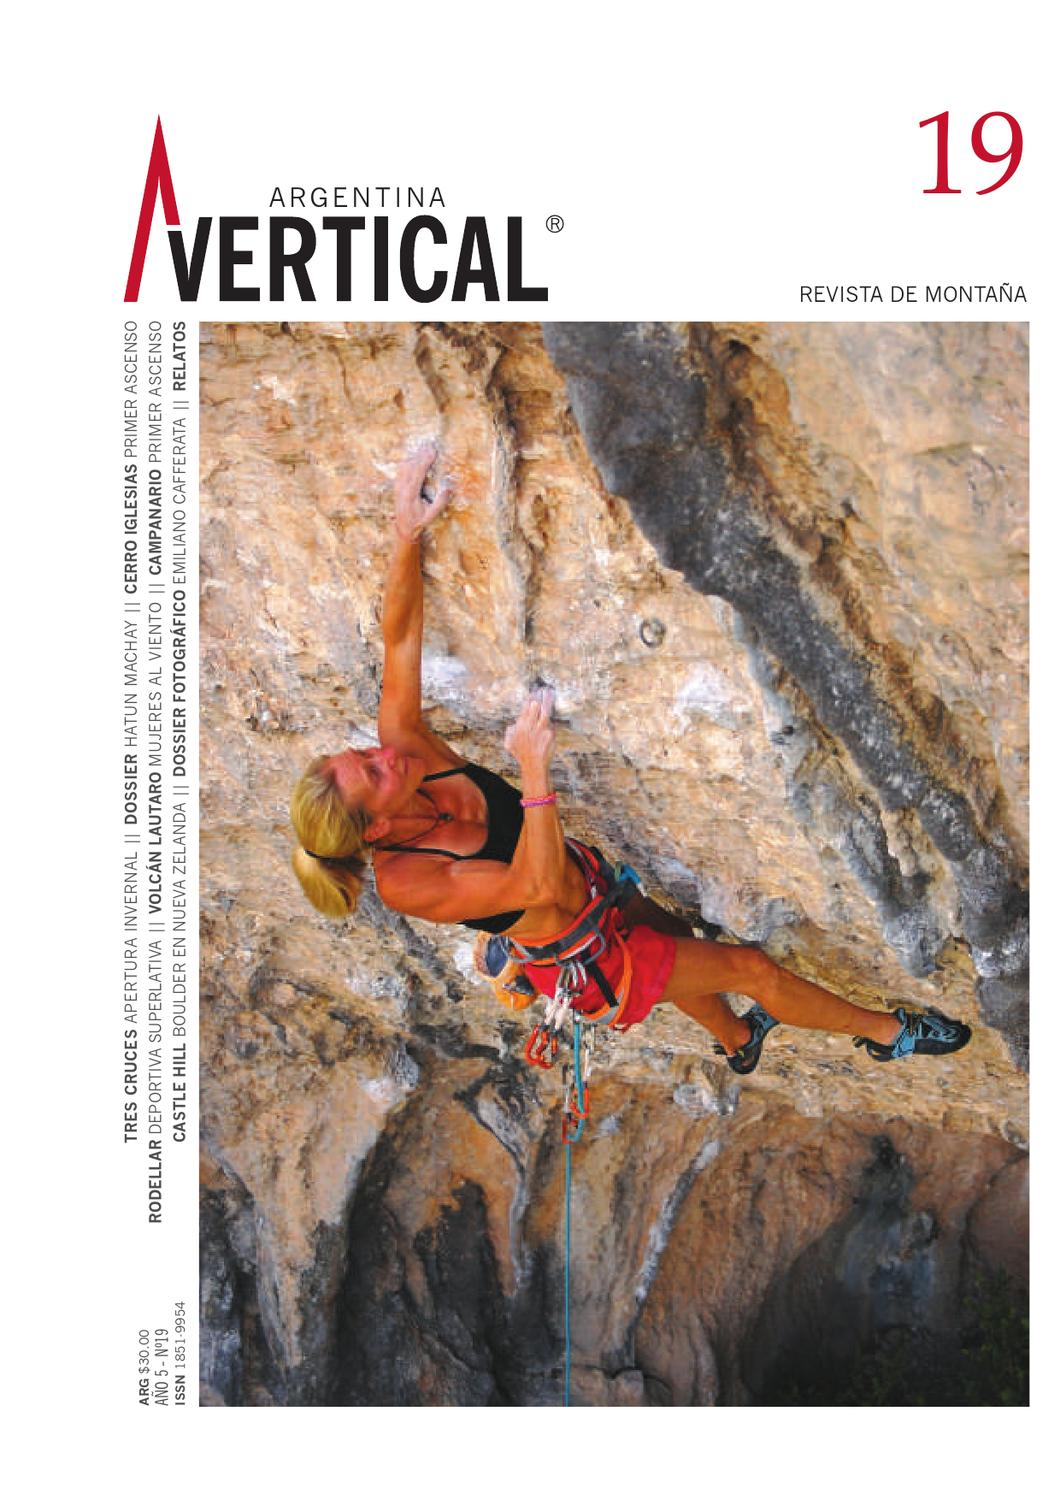 3c0fbd033392 Revista Vertical 19 by Vertical Argentina - Revista de Montaña - issuu